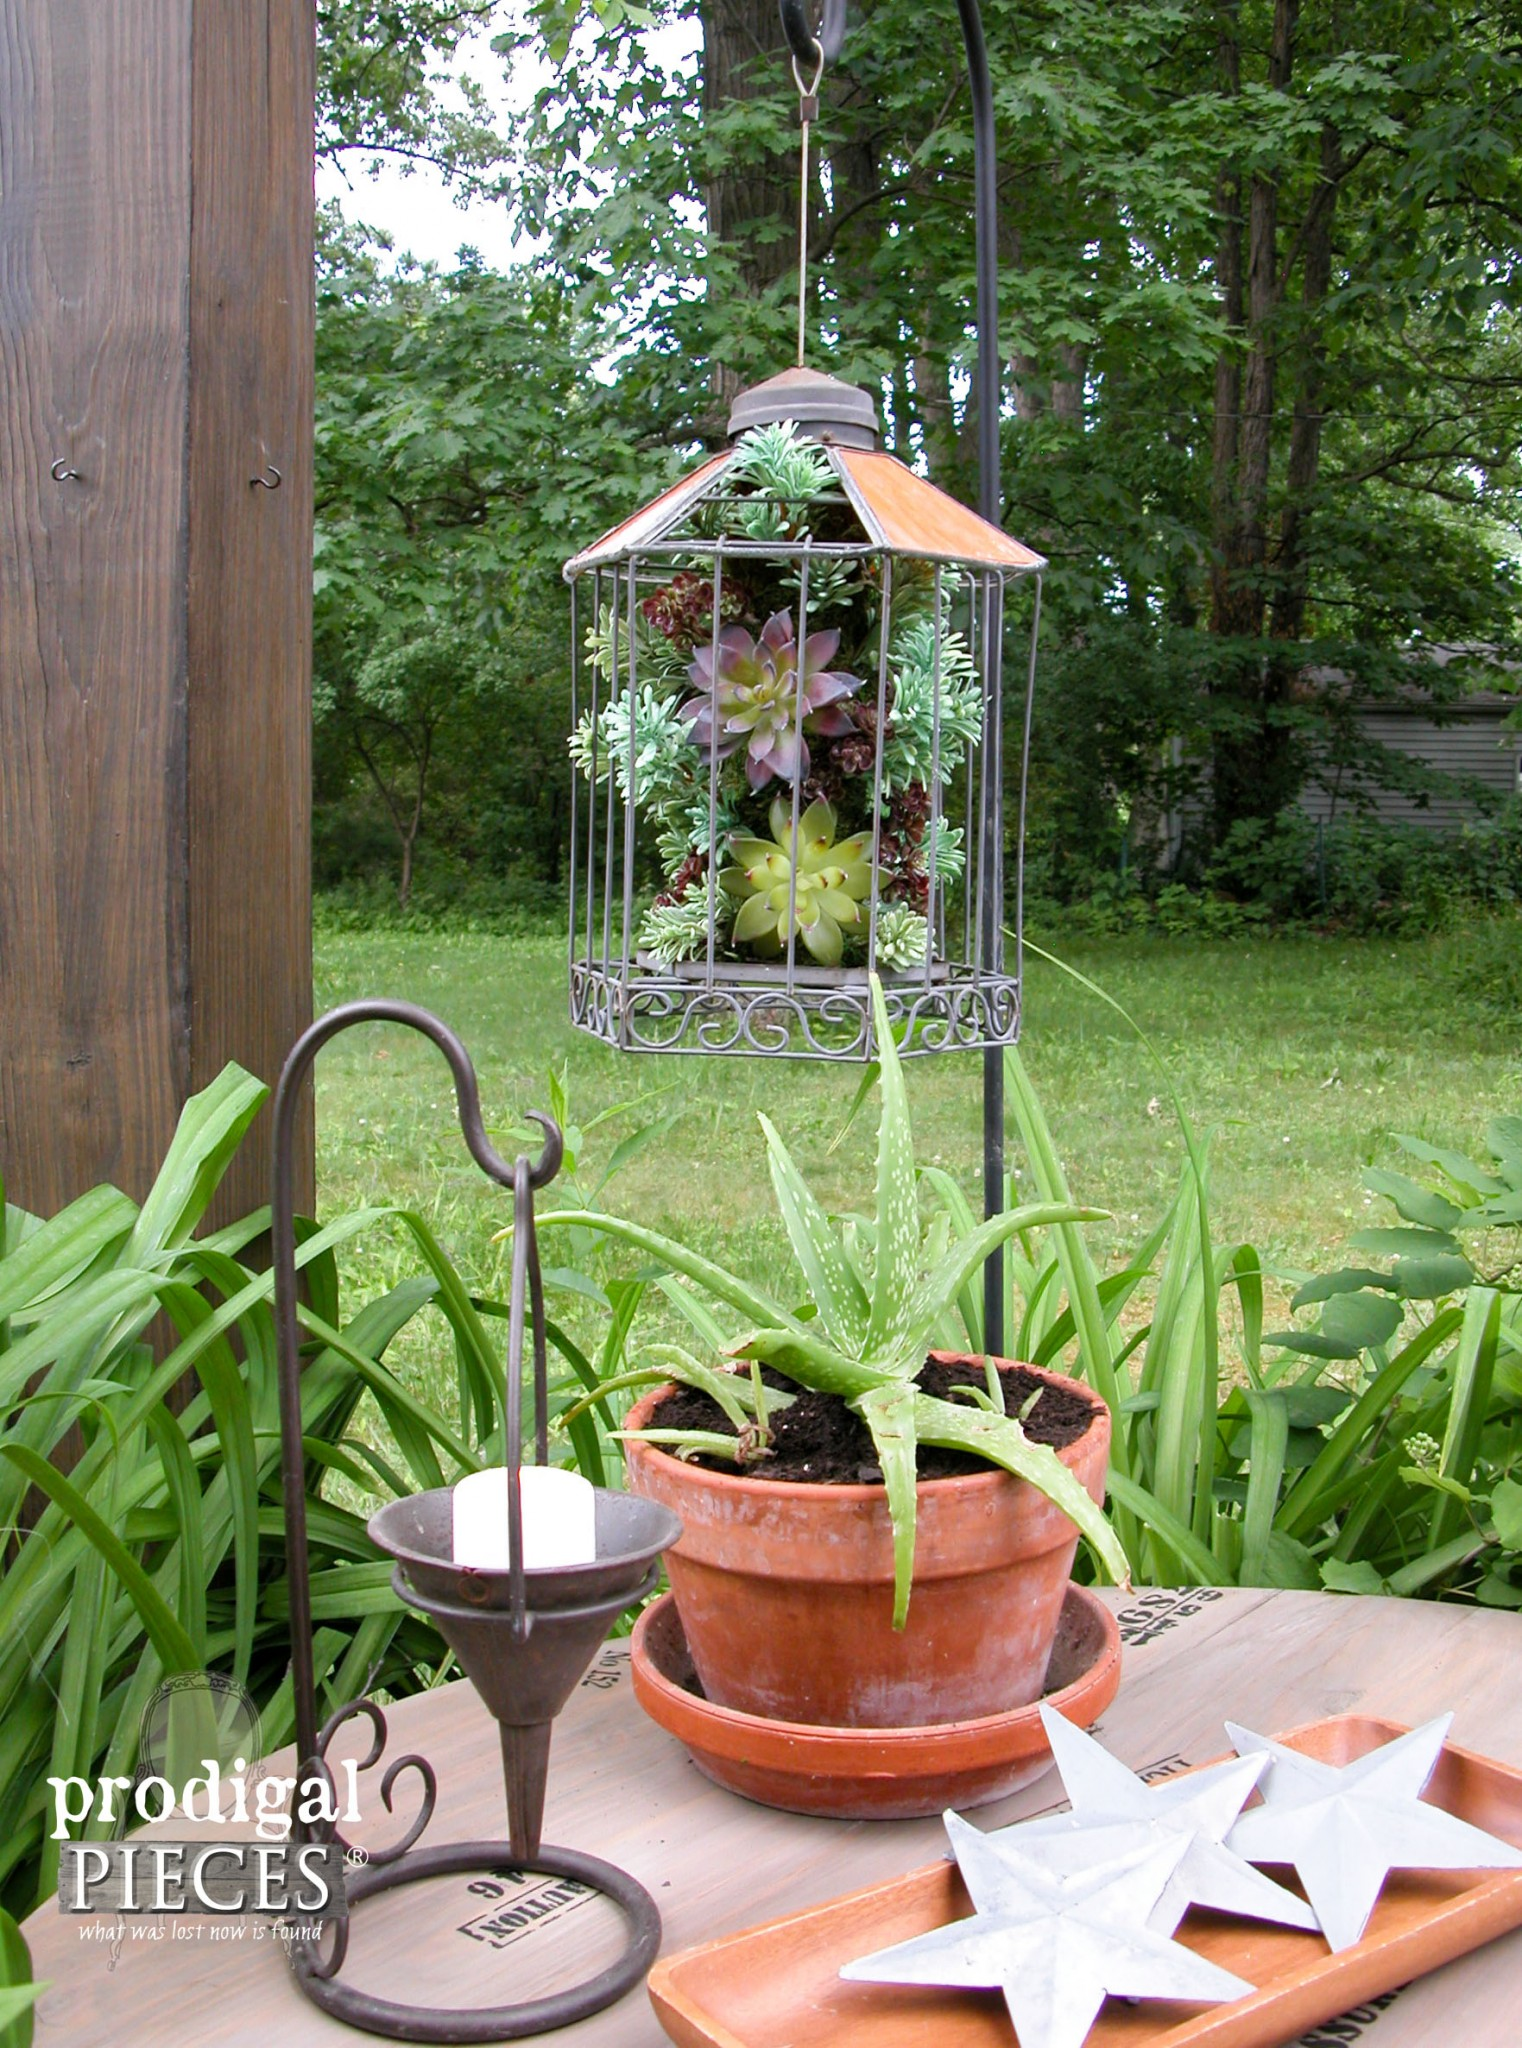 Patio Succulent Planter Made from Broken Bird Feeder by Prodigal Pieces | www.prodigalpieces.com